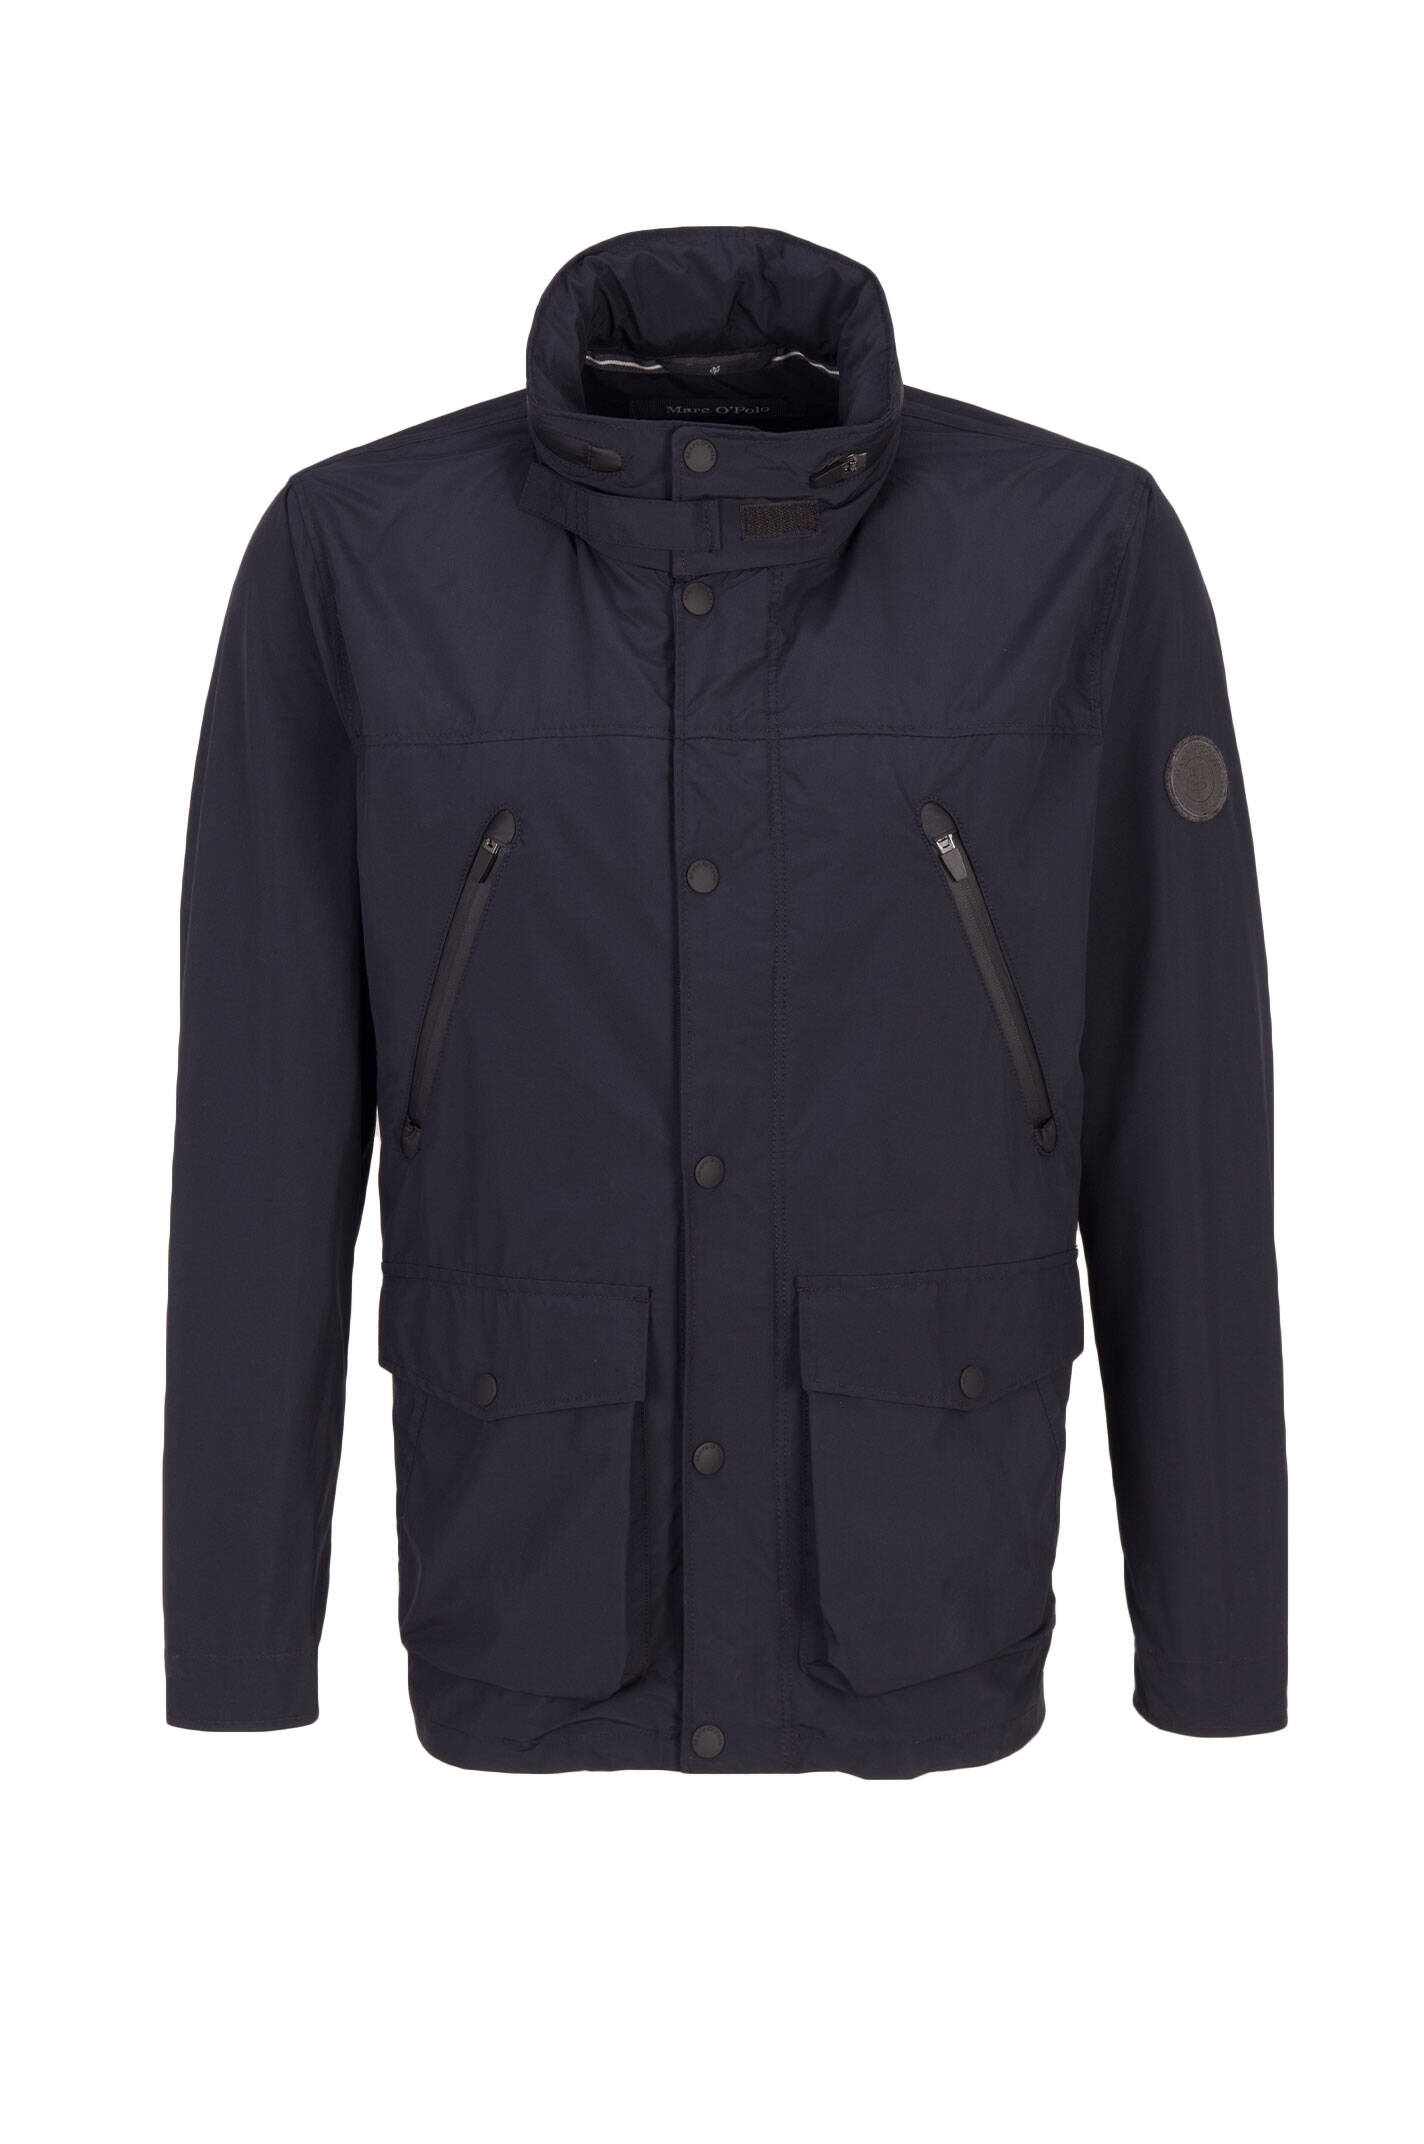 2 in 1 jacket marc o 39 polo navy blue coats and jackets. Black Bedroom Furniture Sets. Home Design Ideas